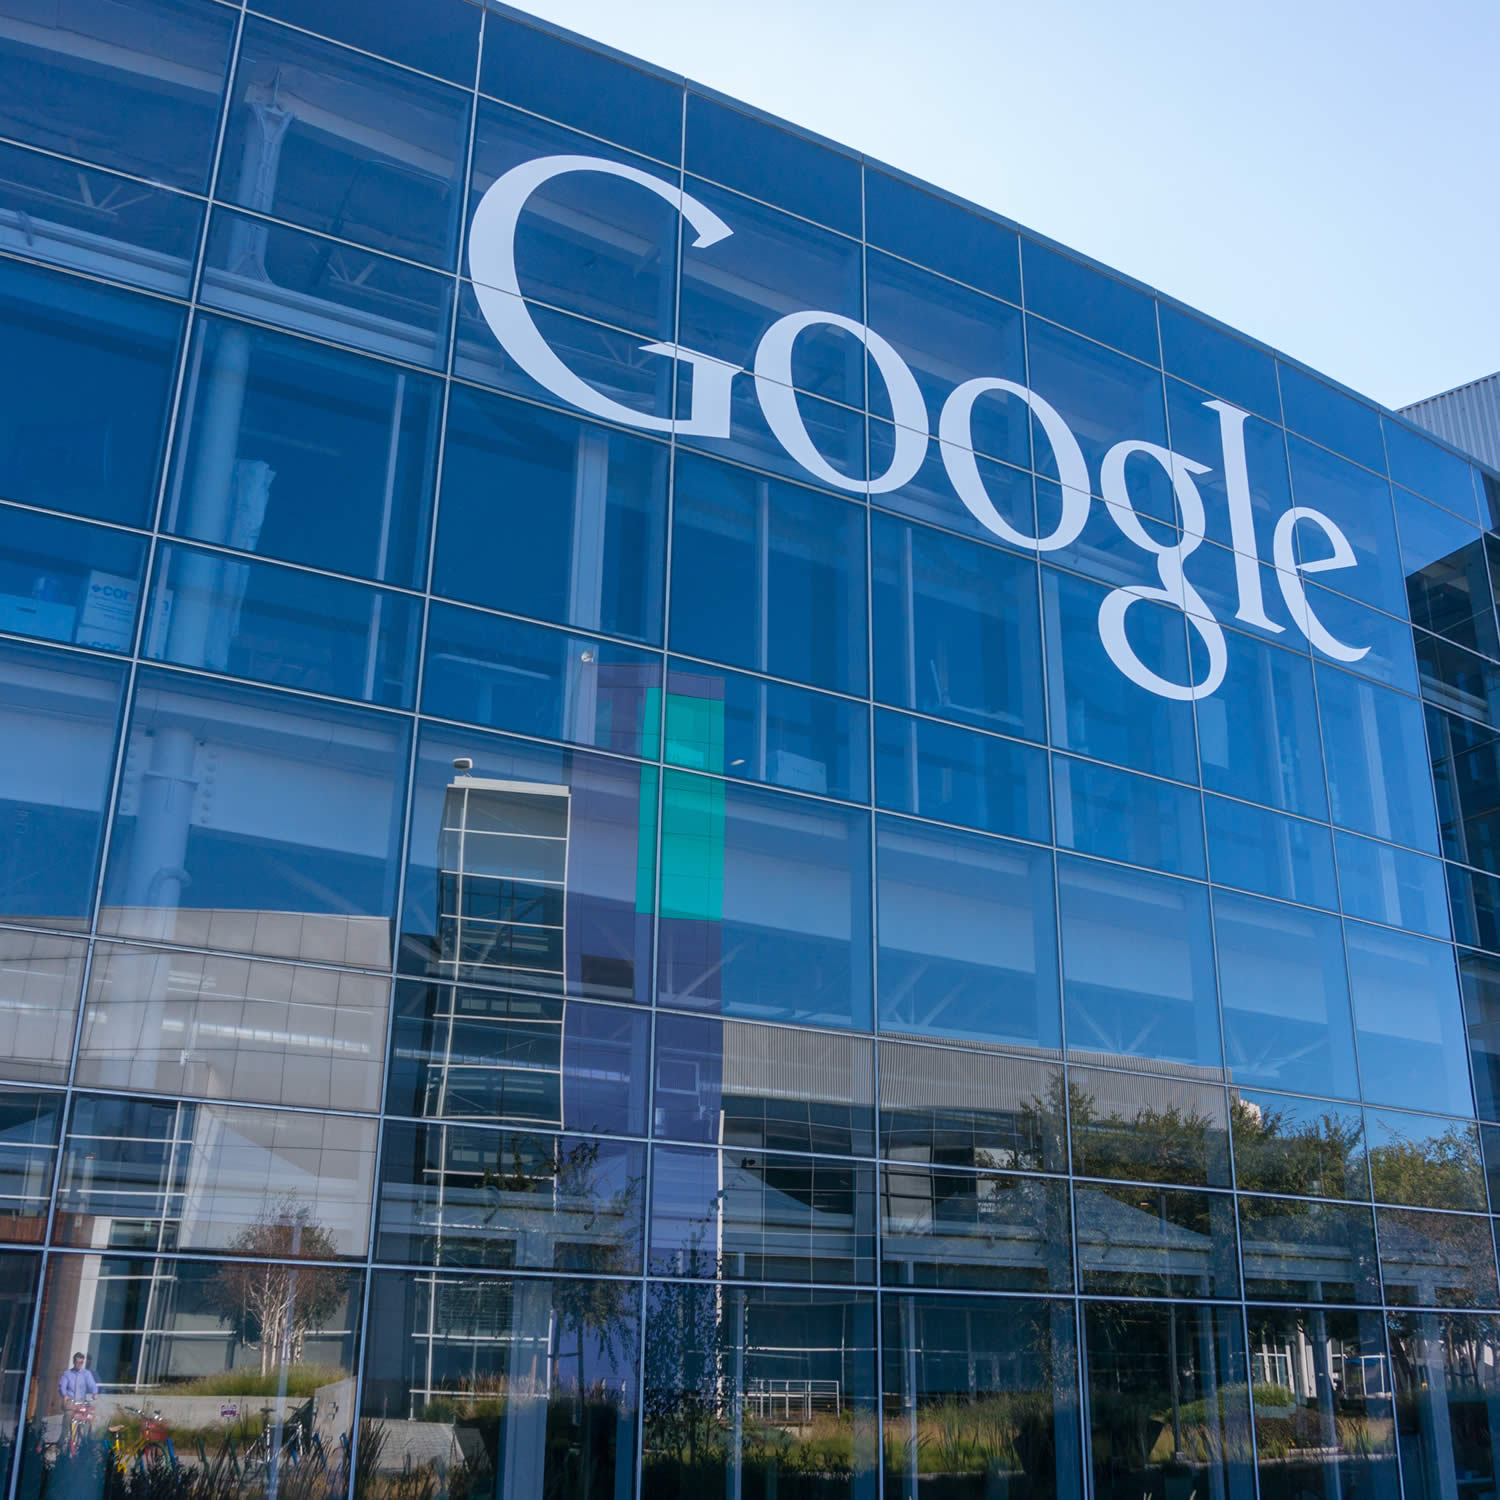 OFCCP Awarded Access to Some Personal Contact Information at Google